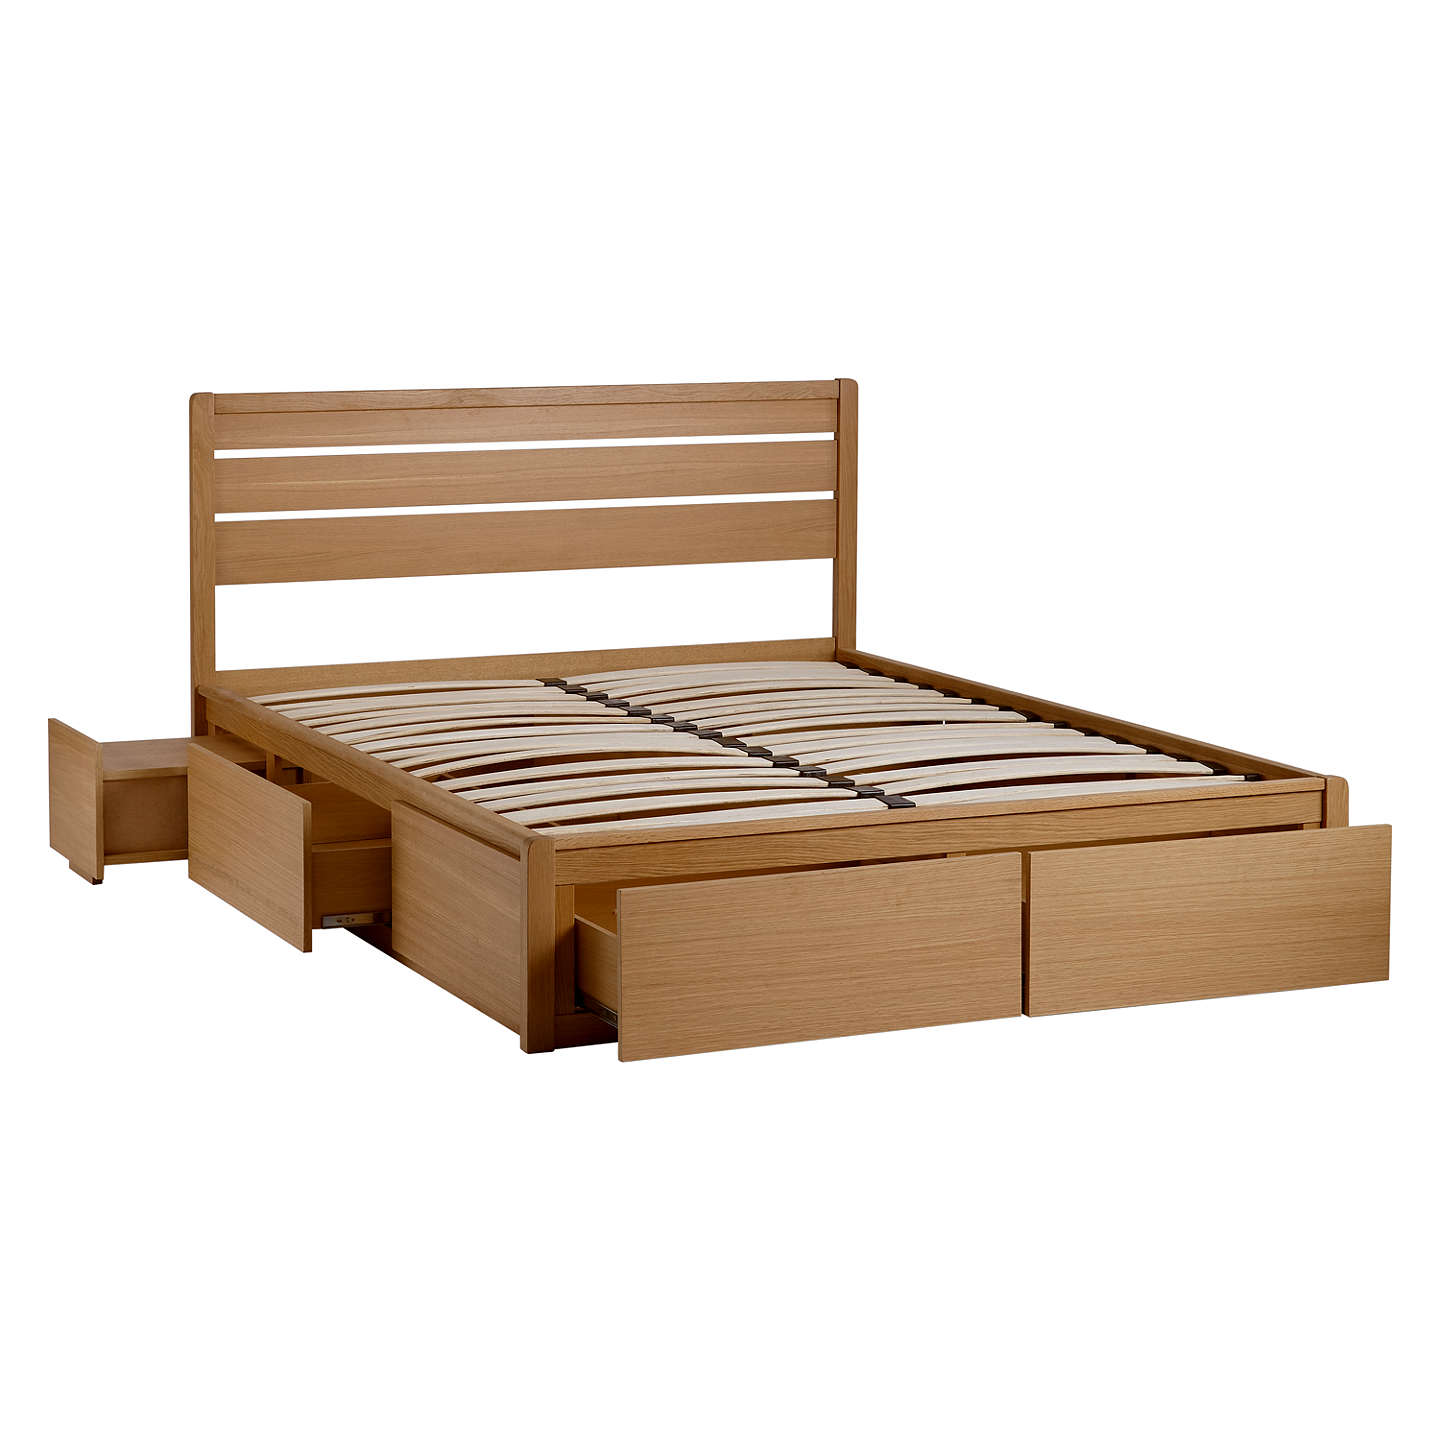 john lewis montreal bed with storage box, double bed, oak buy online at johnlewis.com ... SNEWBYM